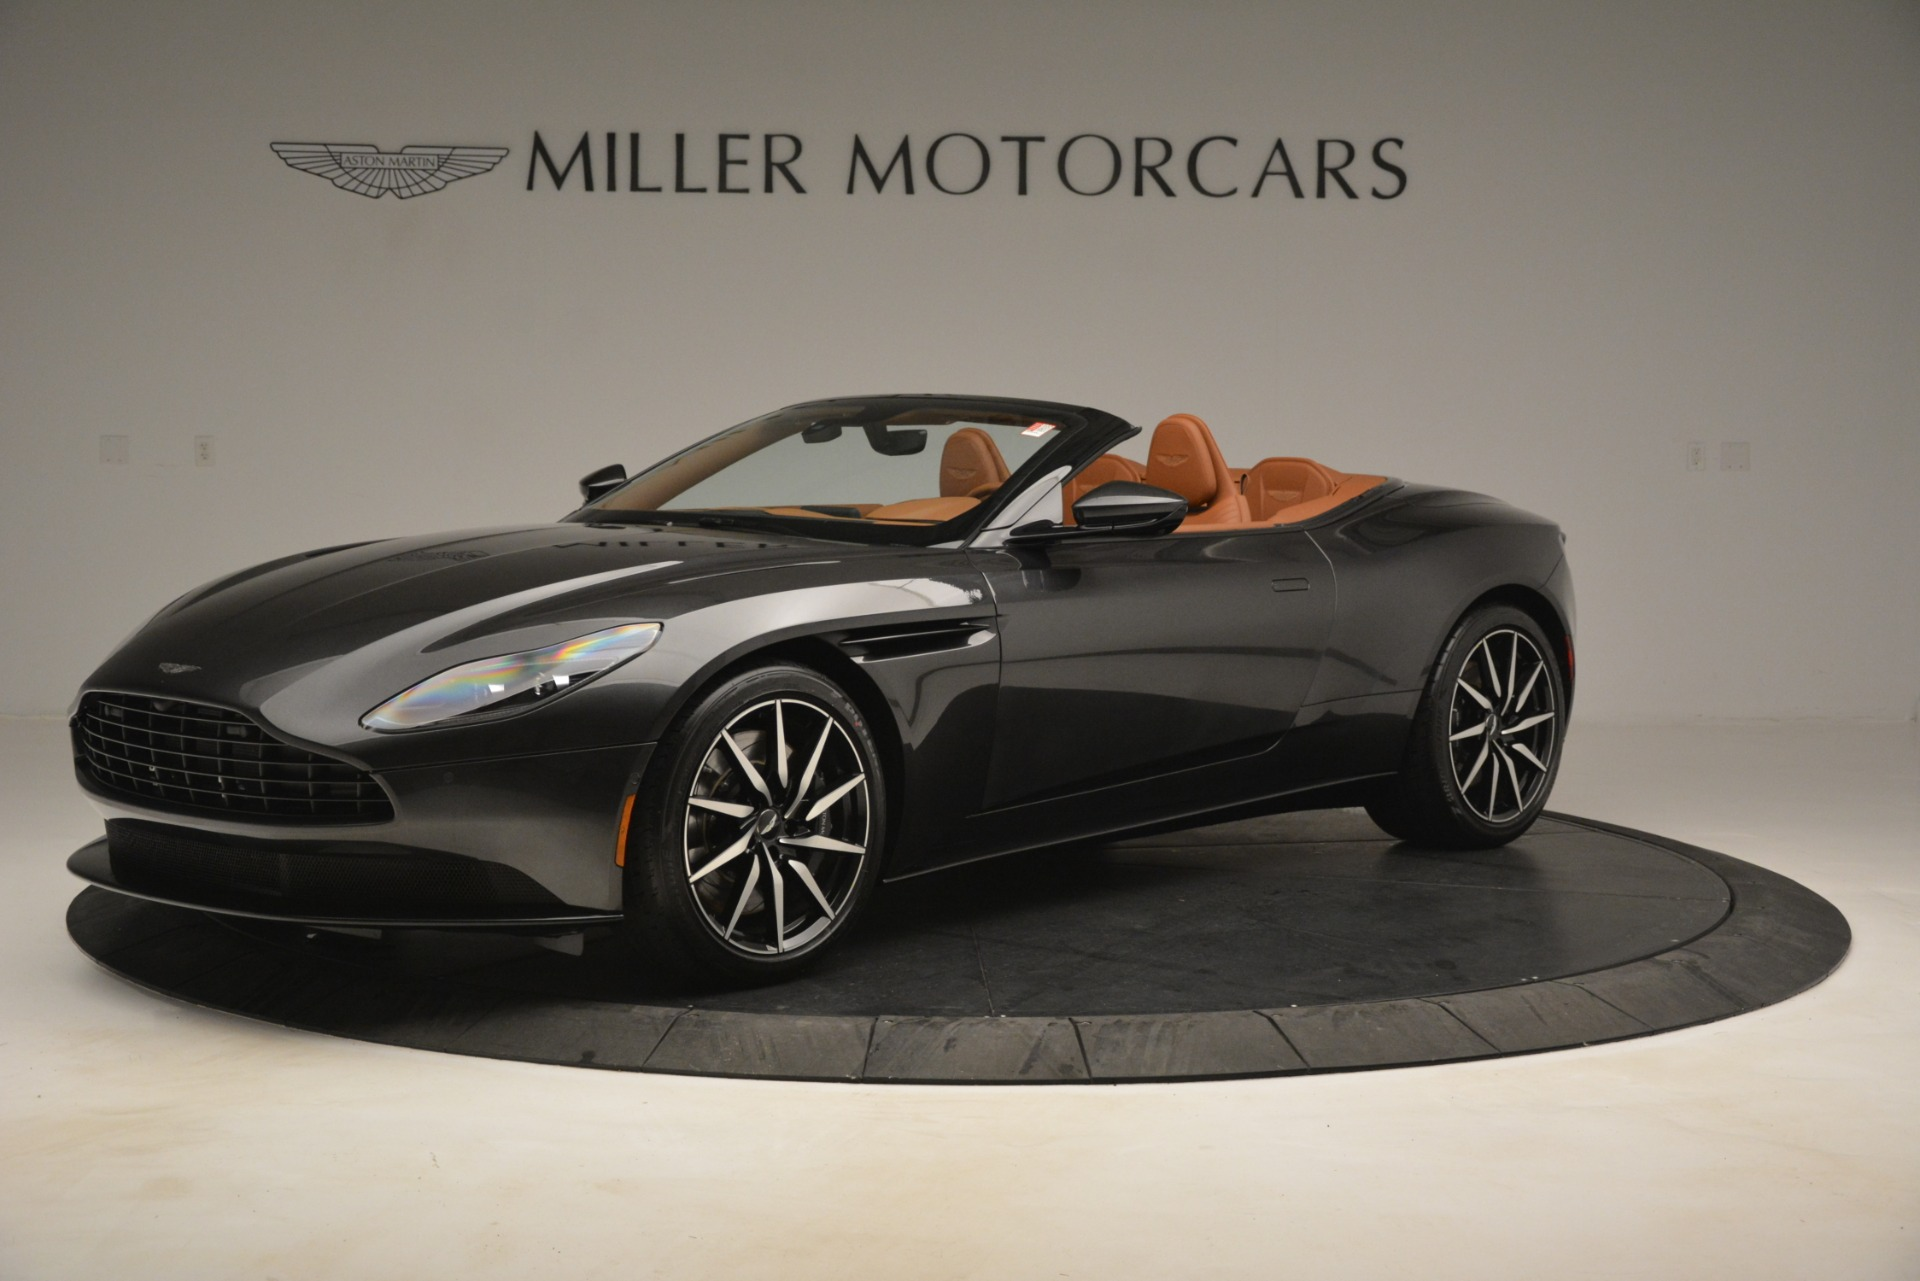 Used 2019 Aston Martin DB11 V8 Volante for sale Sold at Aston Martin of Greenwich in Greenwich CT 06830 1